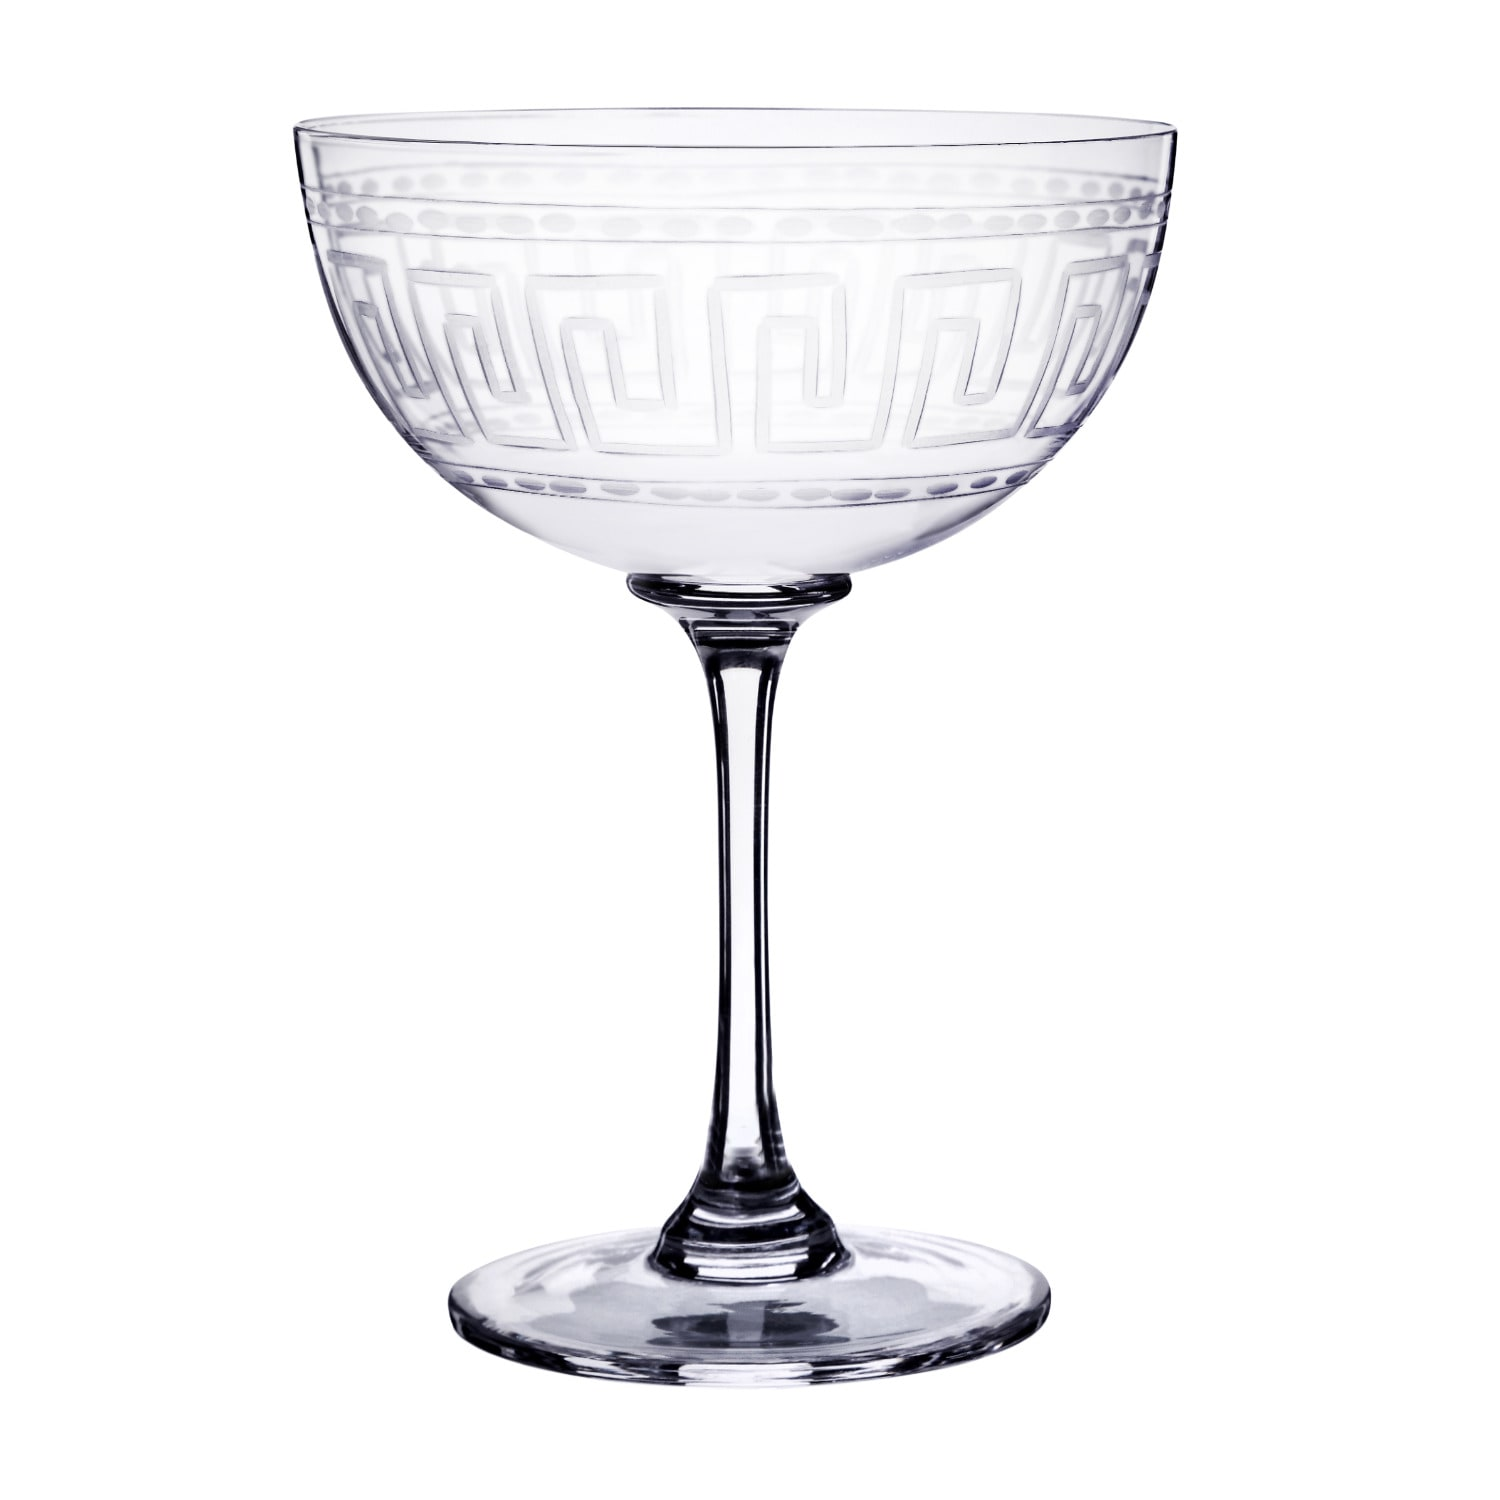 The Vintage List - Six Hand-Engraved Crystal Champagne Saucers With Greek Key Design